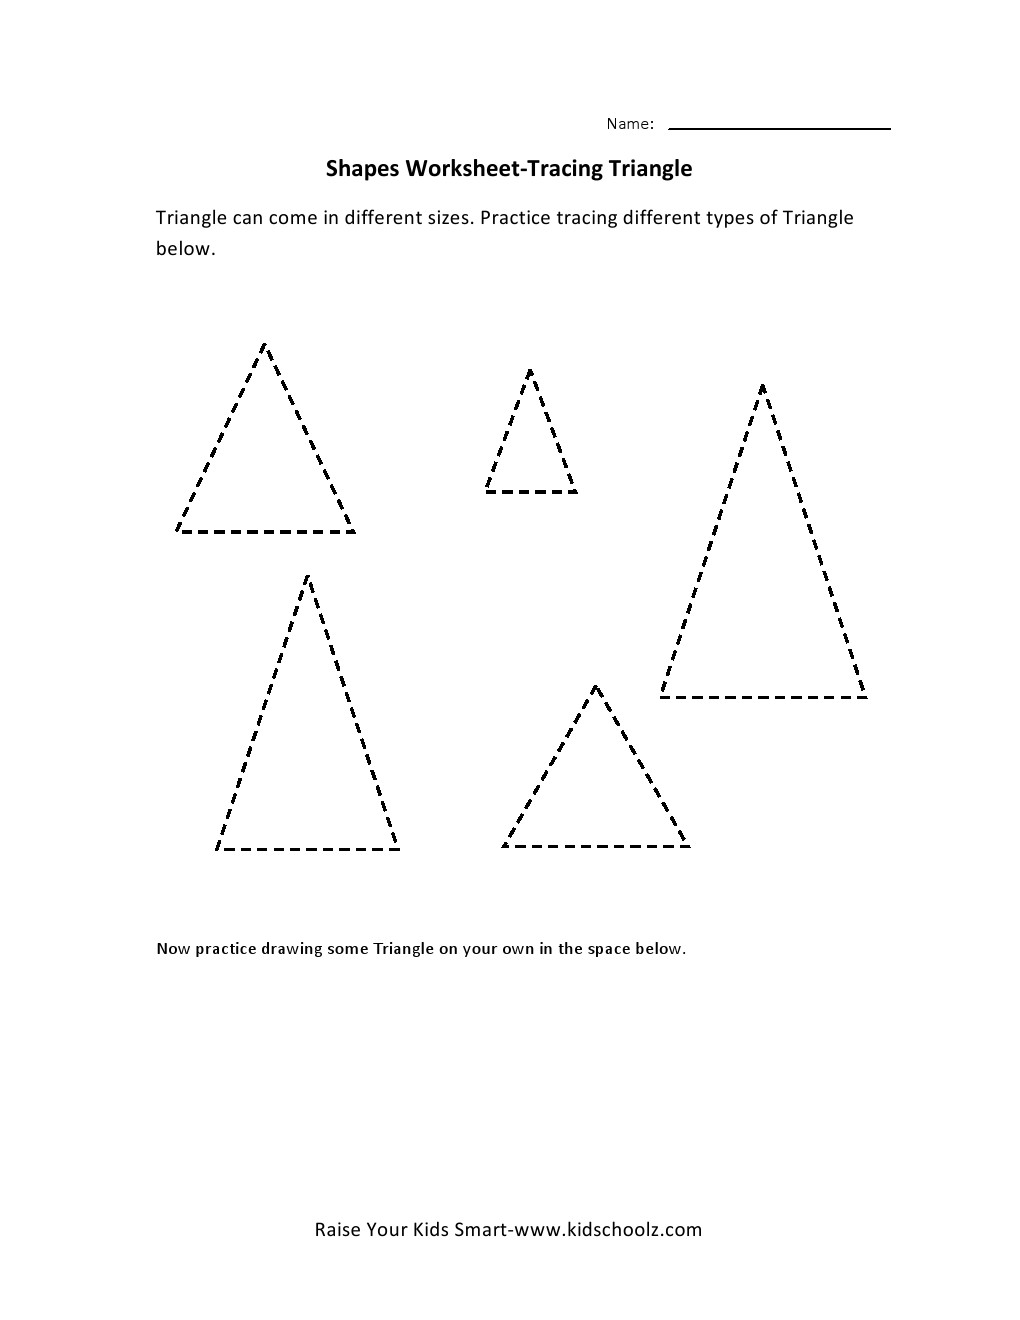 tracing worksheets triangle kidschoolz. Black Bedroom Furniture Sets. Home Design Ideas